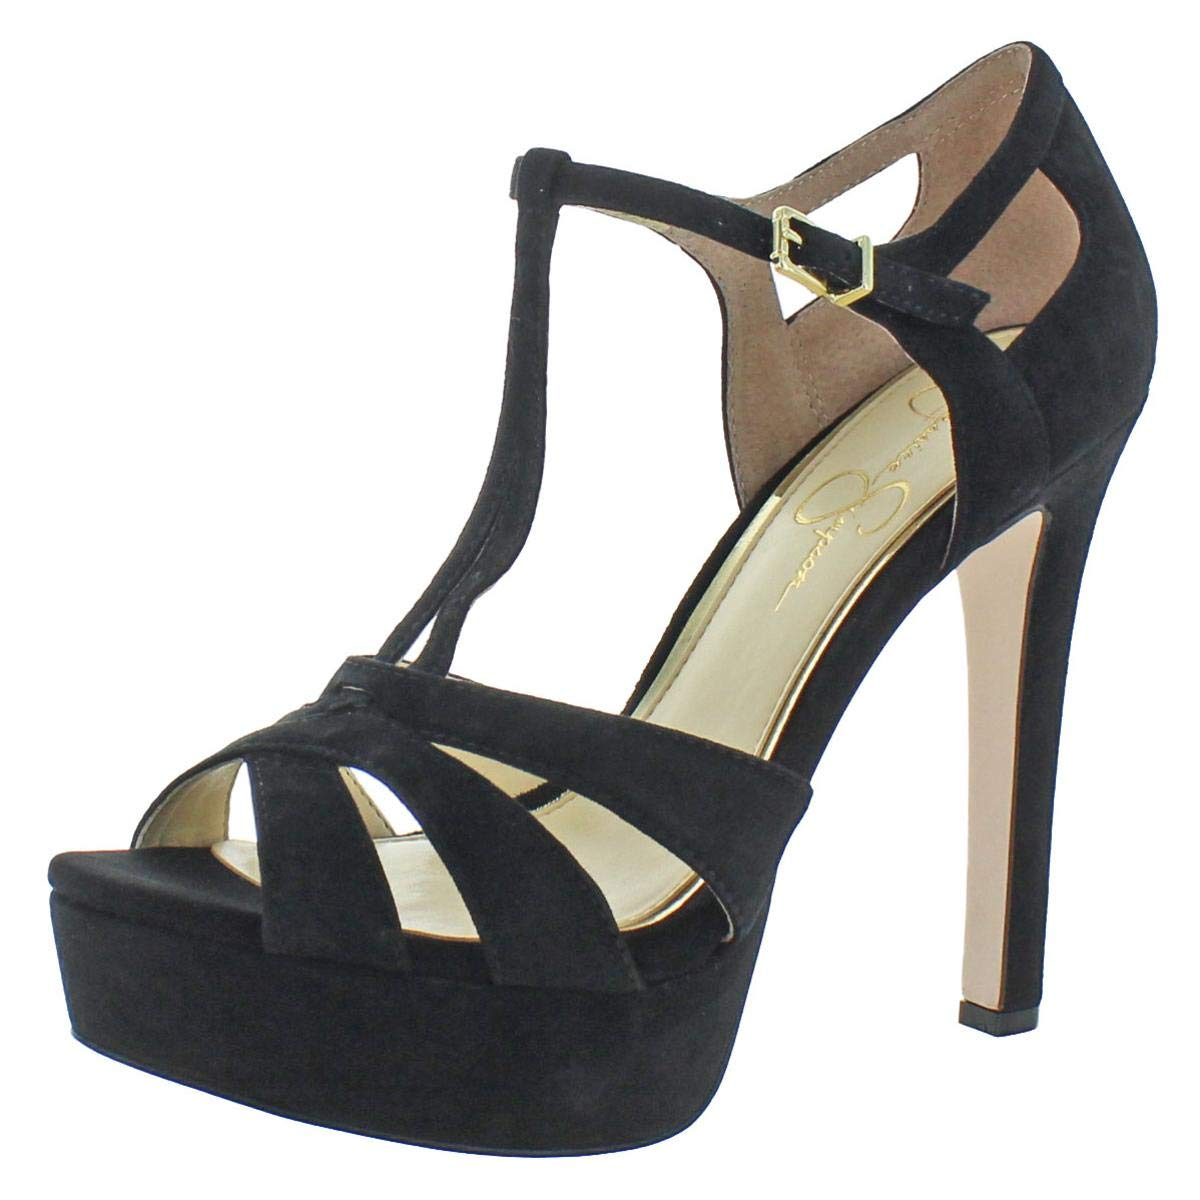 Black Lux Kid Suede Jessica Simpson Women's Bryanne